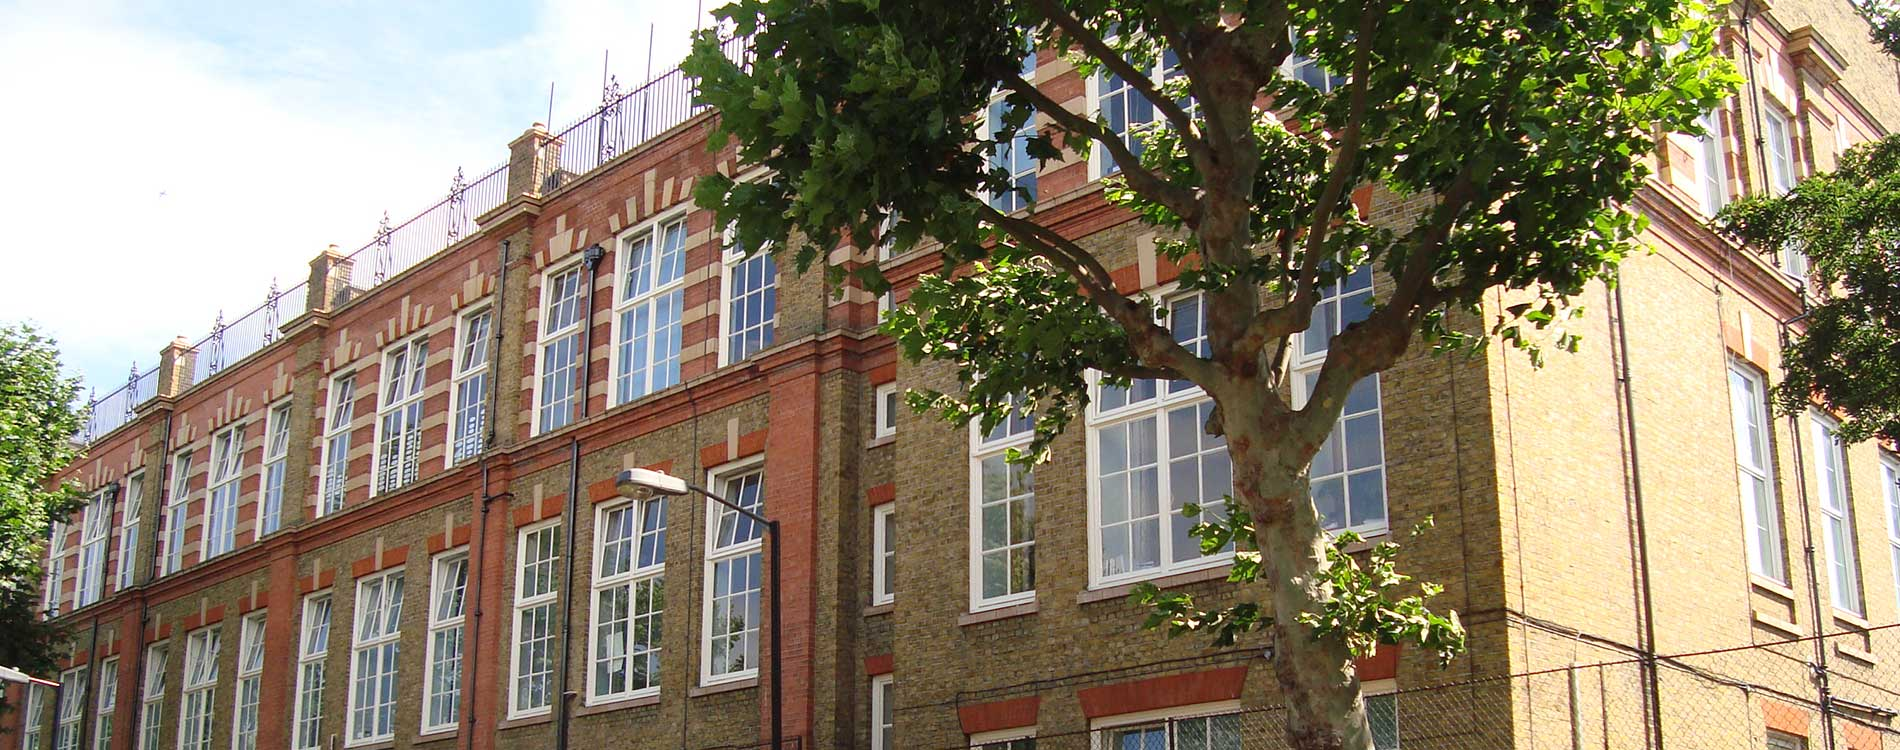 Historic london school with playground on the roof looks rejuvenated after the renovation works carried out by Axis